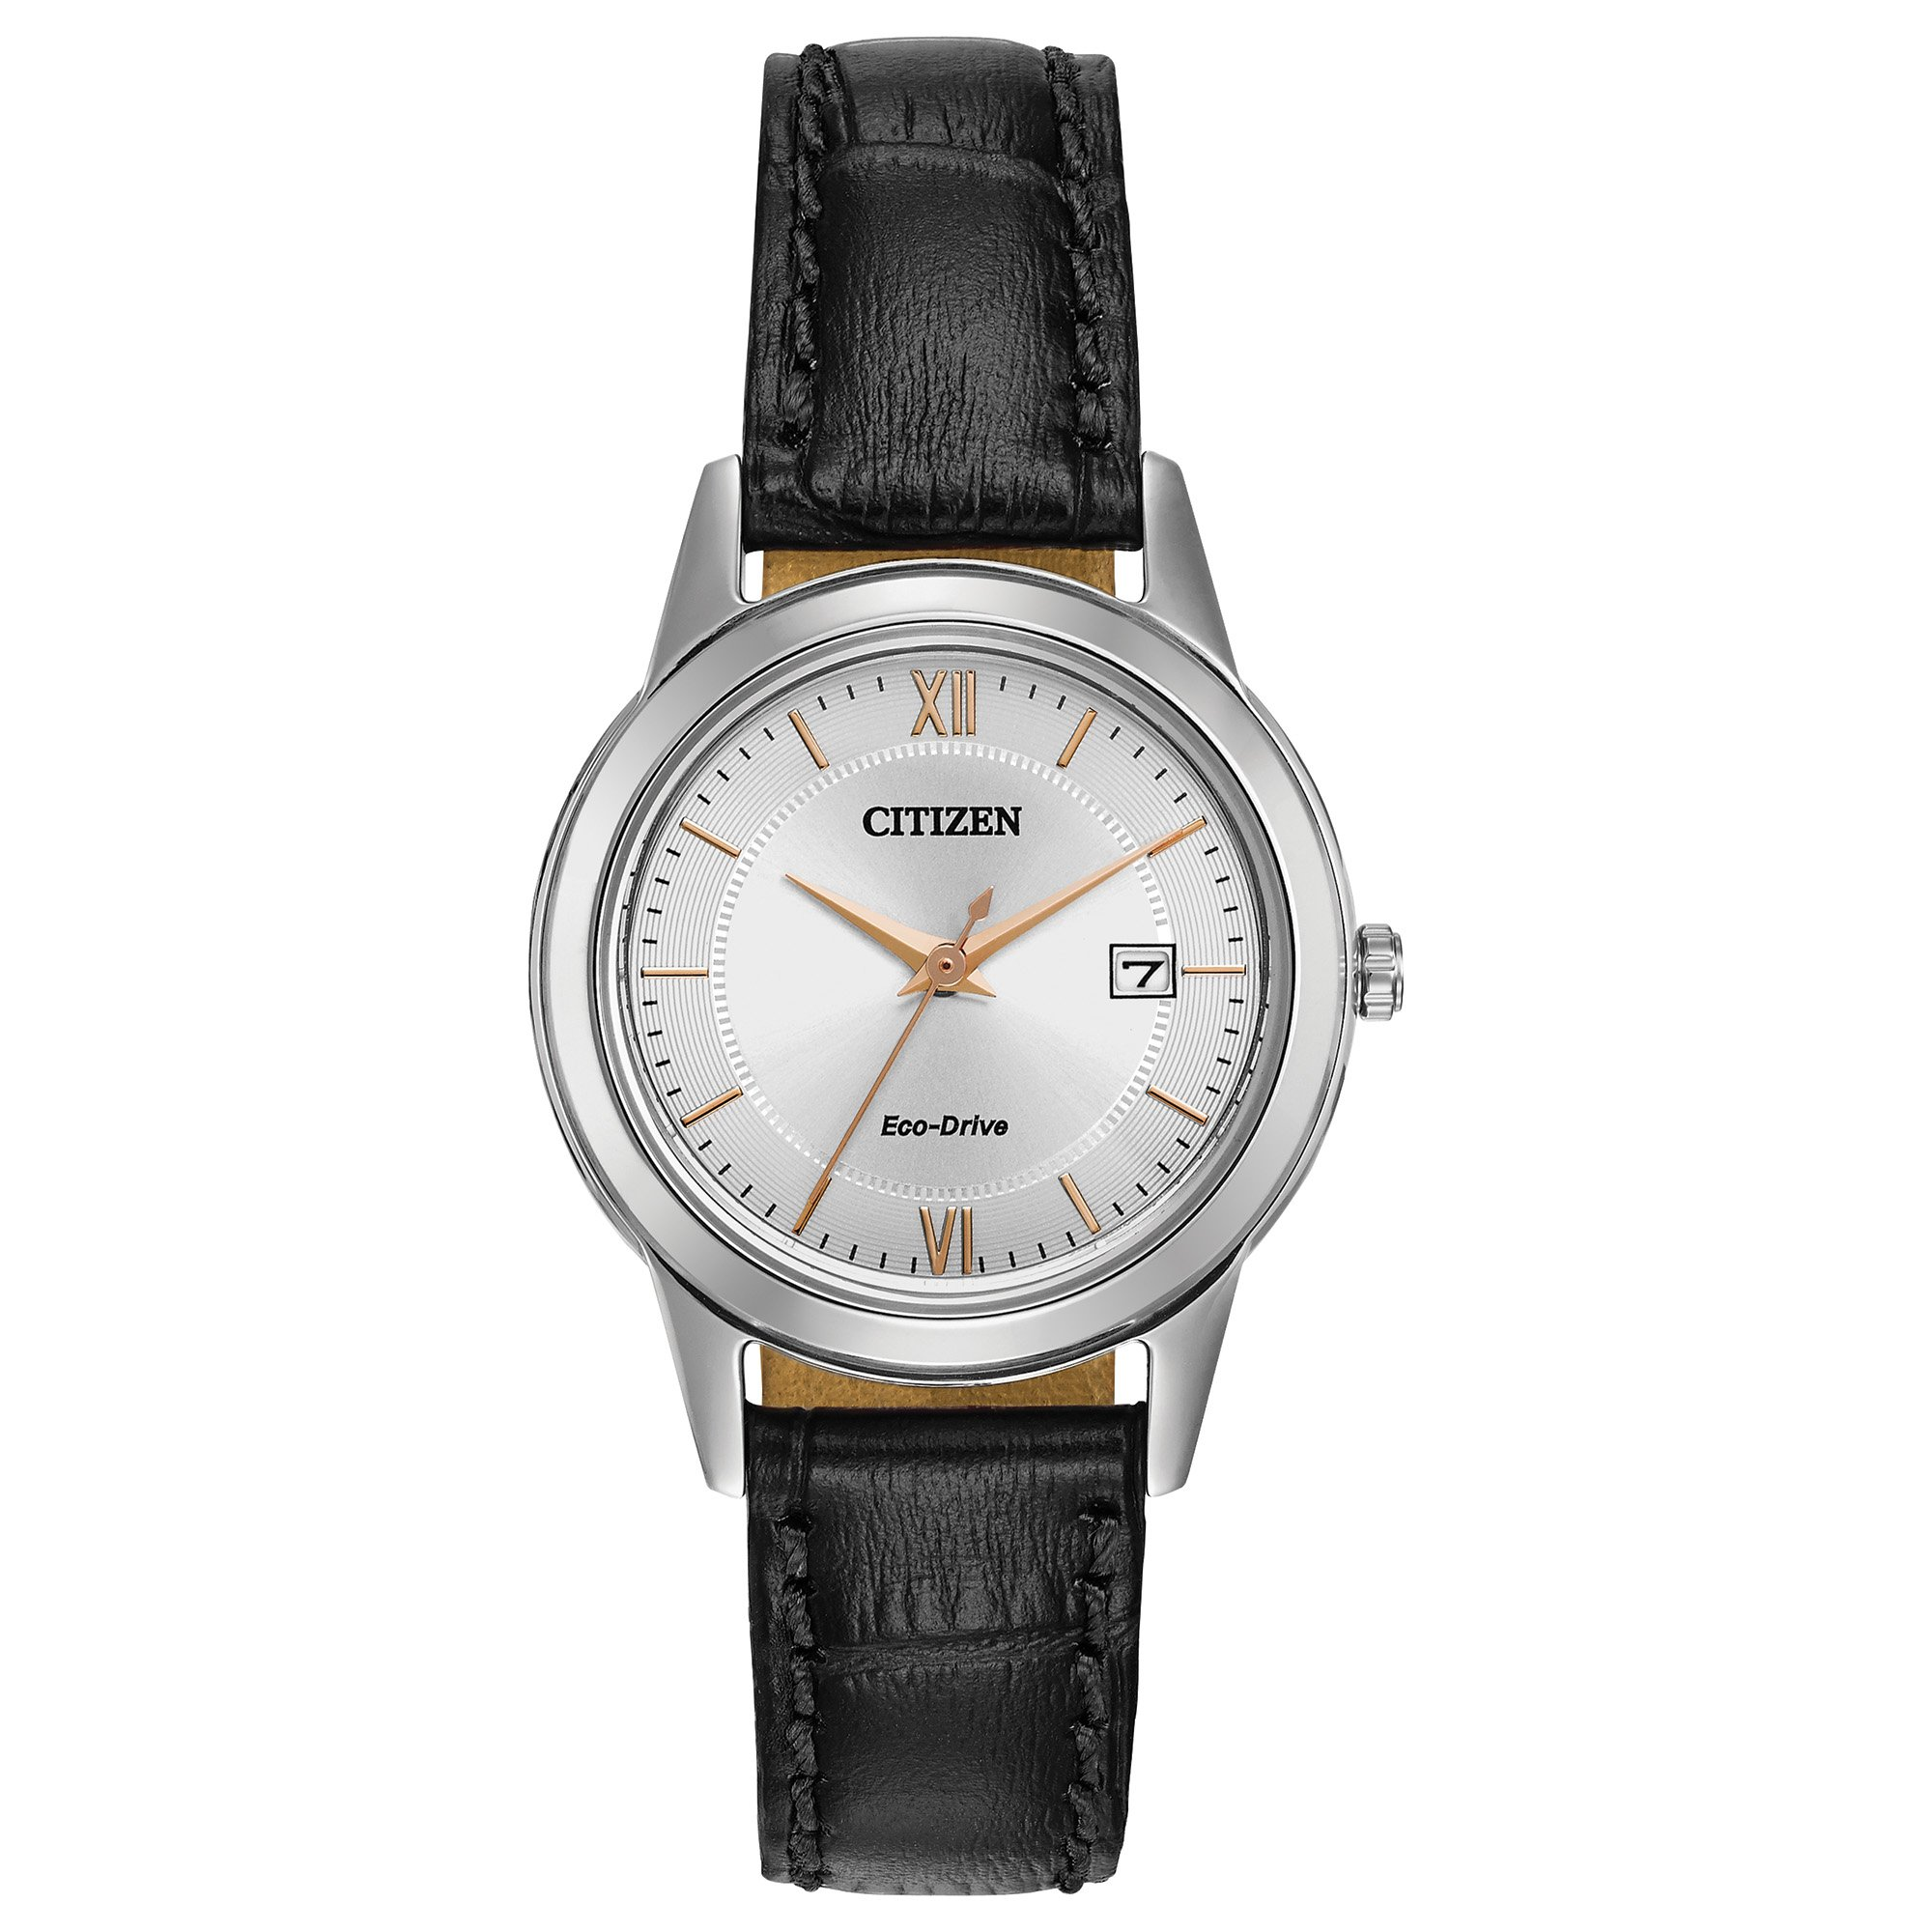 Citizen Women's Eco-Drive Stainless Steel Watch with Date, FE1086-04A